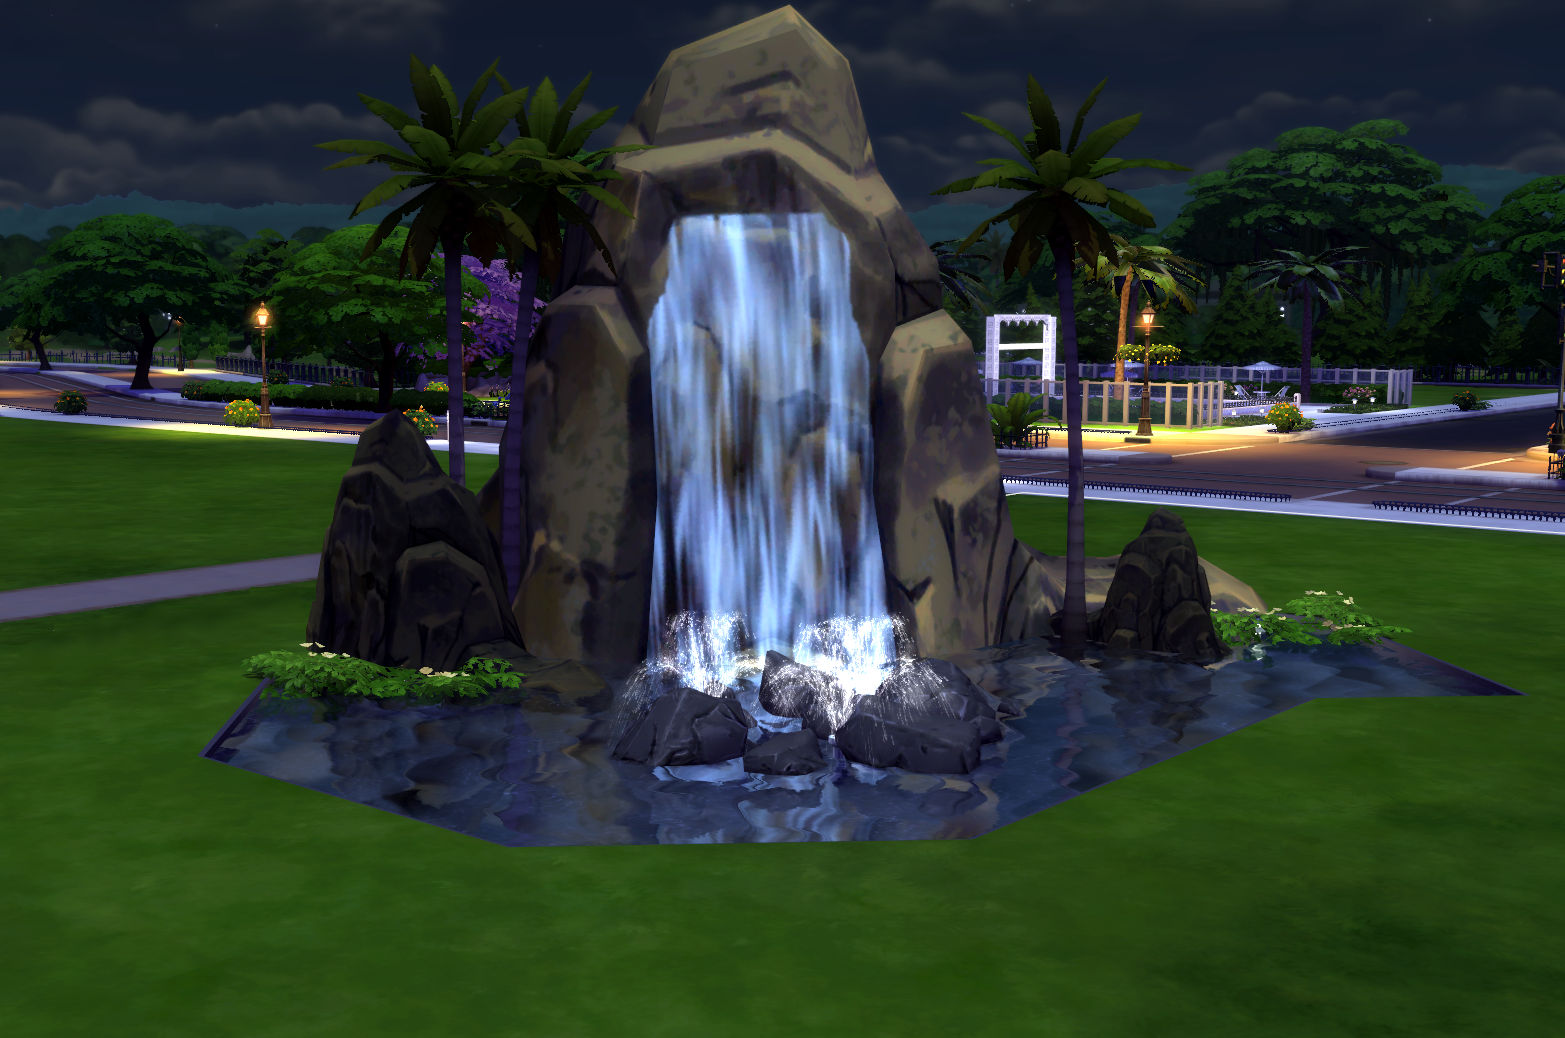 Mod The Sims - Pinnacle Rock and Waterfall